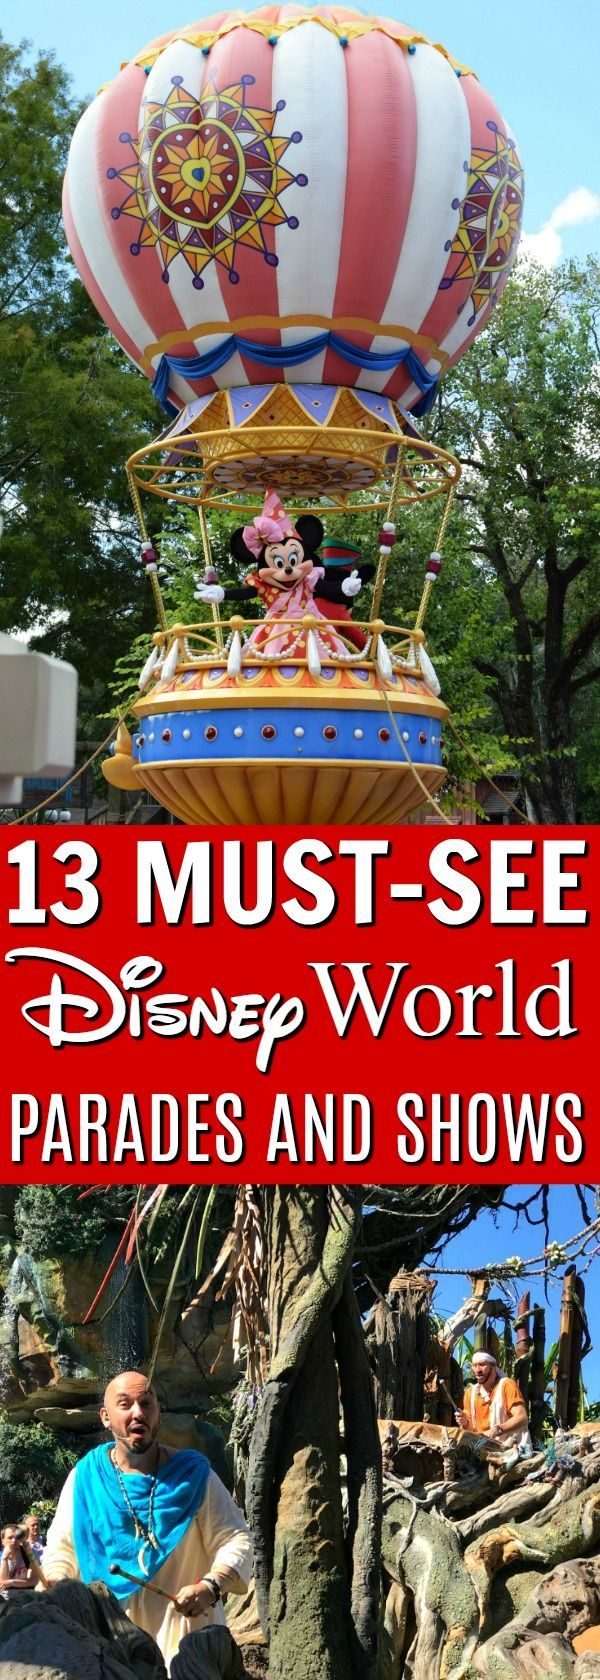 Disney World Tips | With all the parades and shows at Disney World, it's hard to see there all. But Here are 13 favorites you might want to consider! | Locations, lengths, and times